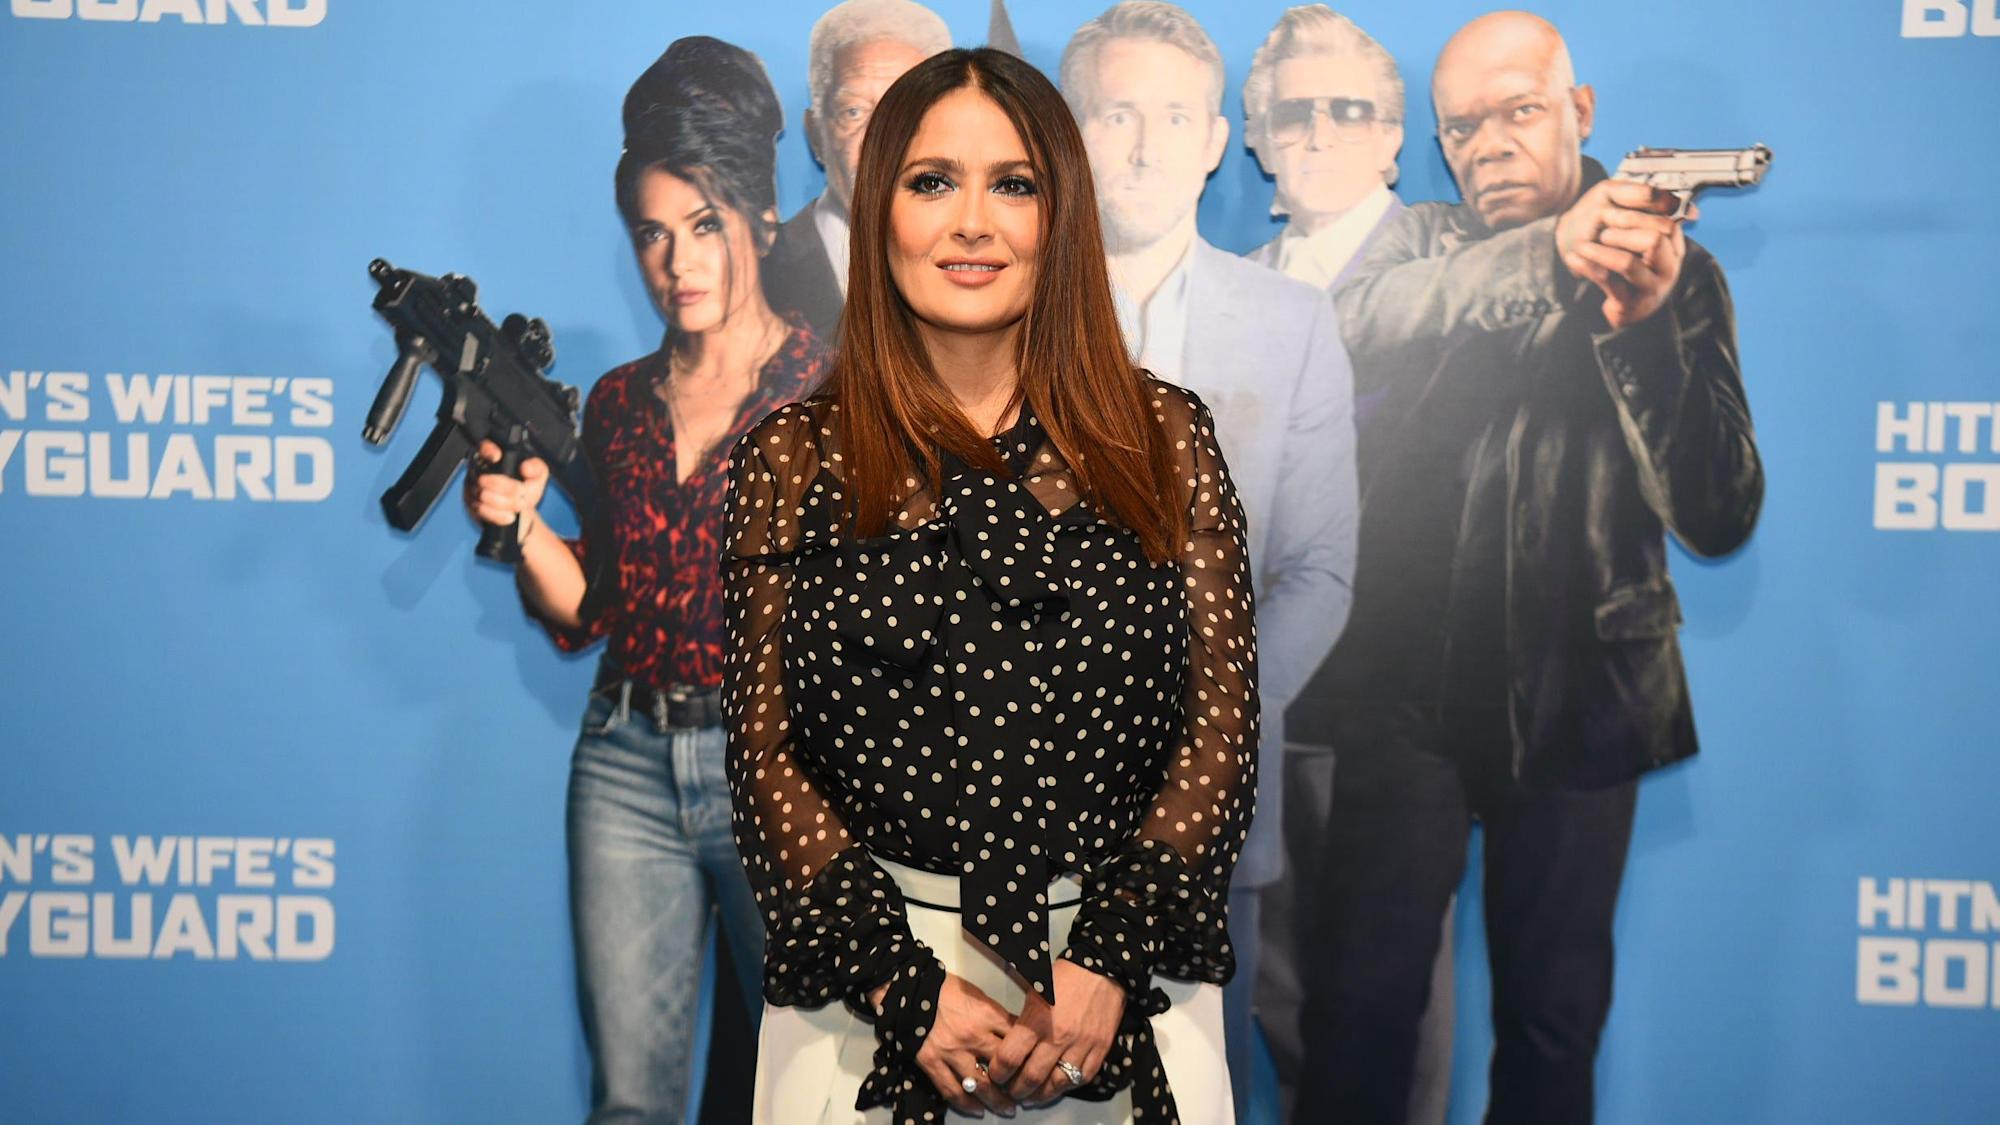 Salma Hayek rubs shoulders with reality TV stars at event for latest film